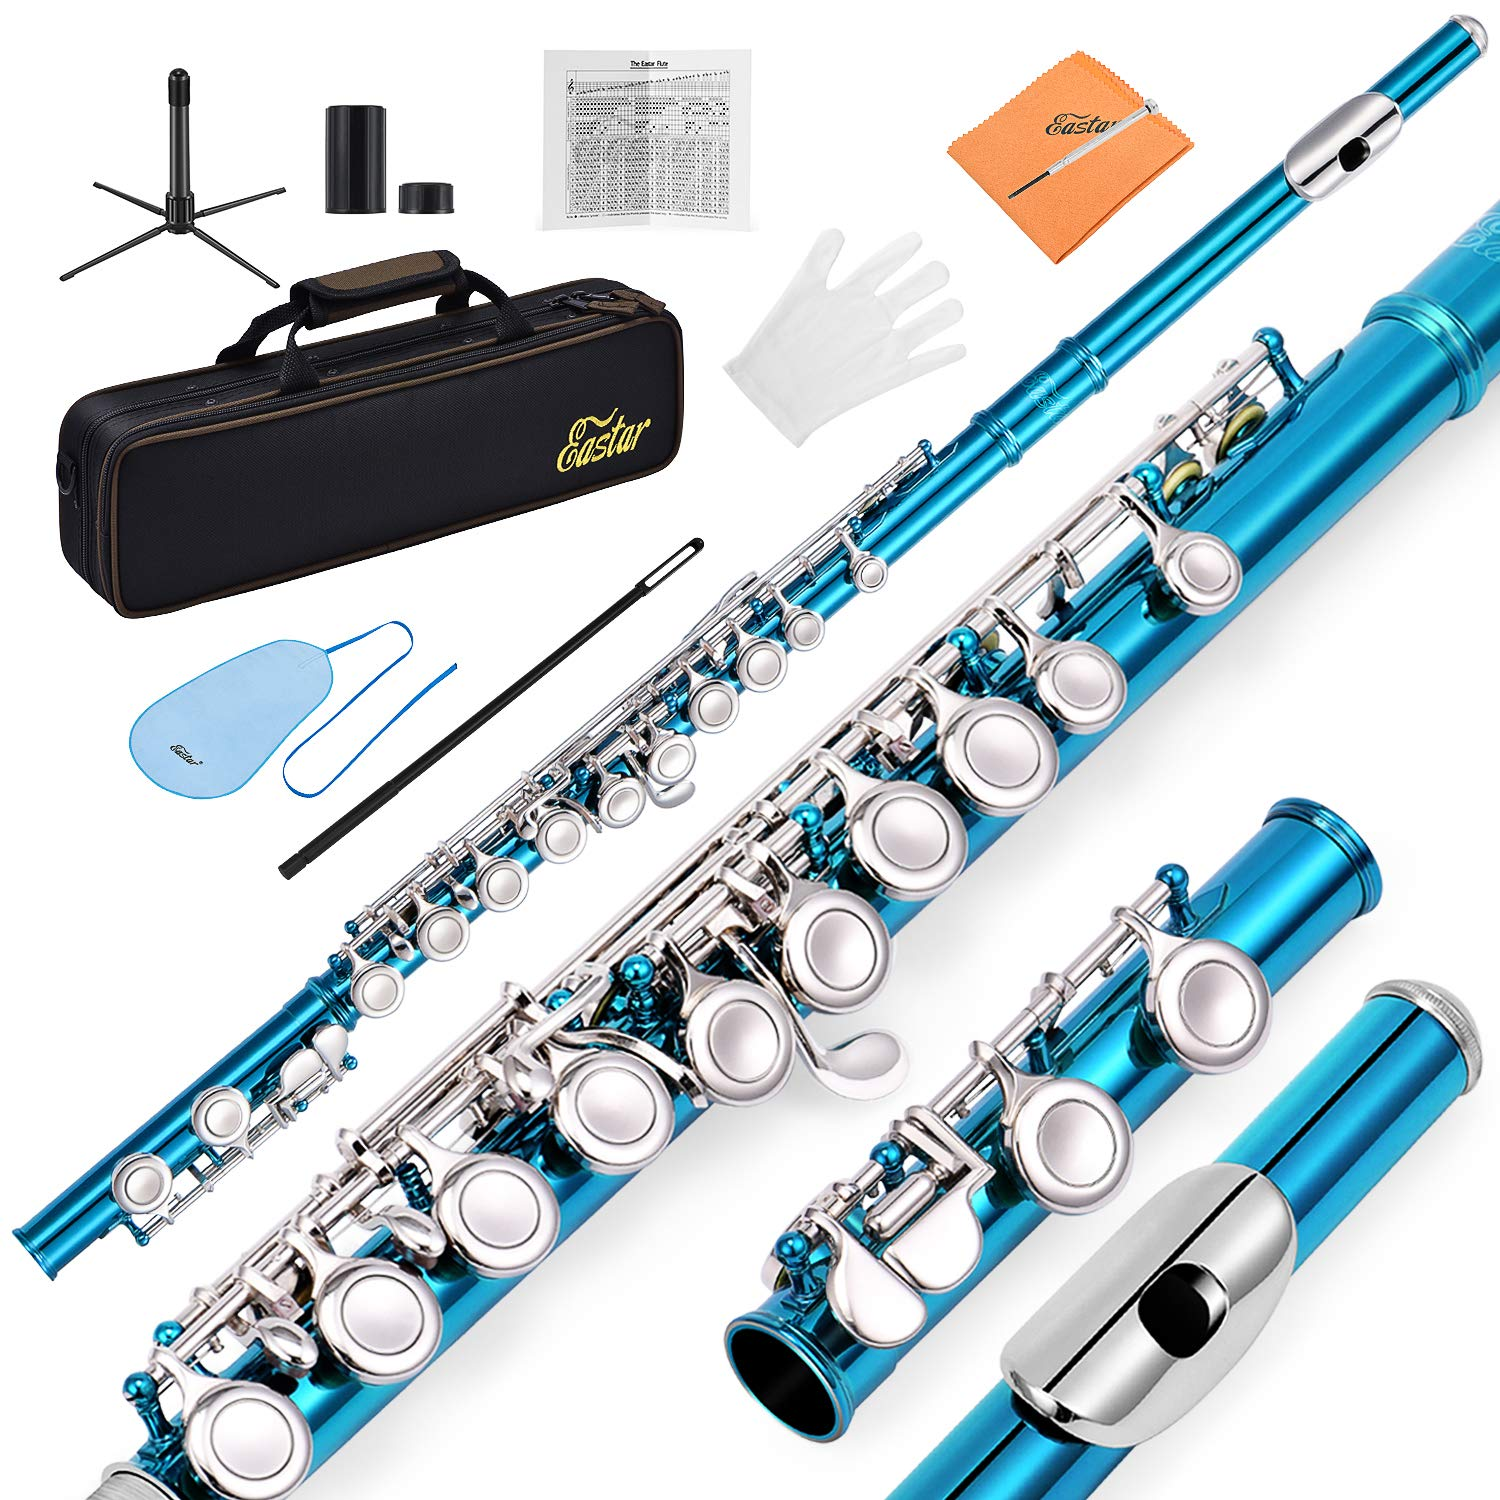 Eastar EFL-1SB 16 Keys C Flute Close Hole Instrument Nickel Plated Sky Blue Beginner Flute Set With Fingering Chart,Hard Case, Cleaning Rod, Stand, Strap, Gloves by Eastar (Image #1)